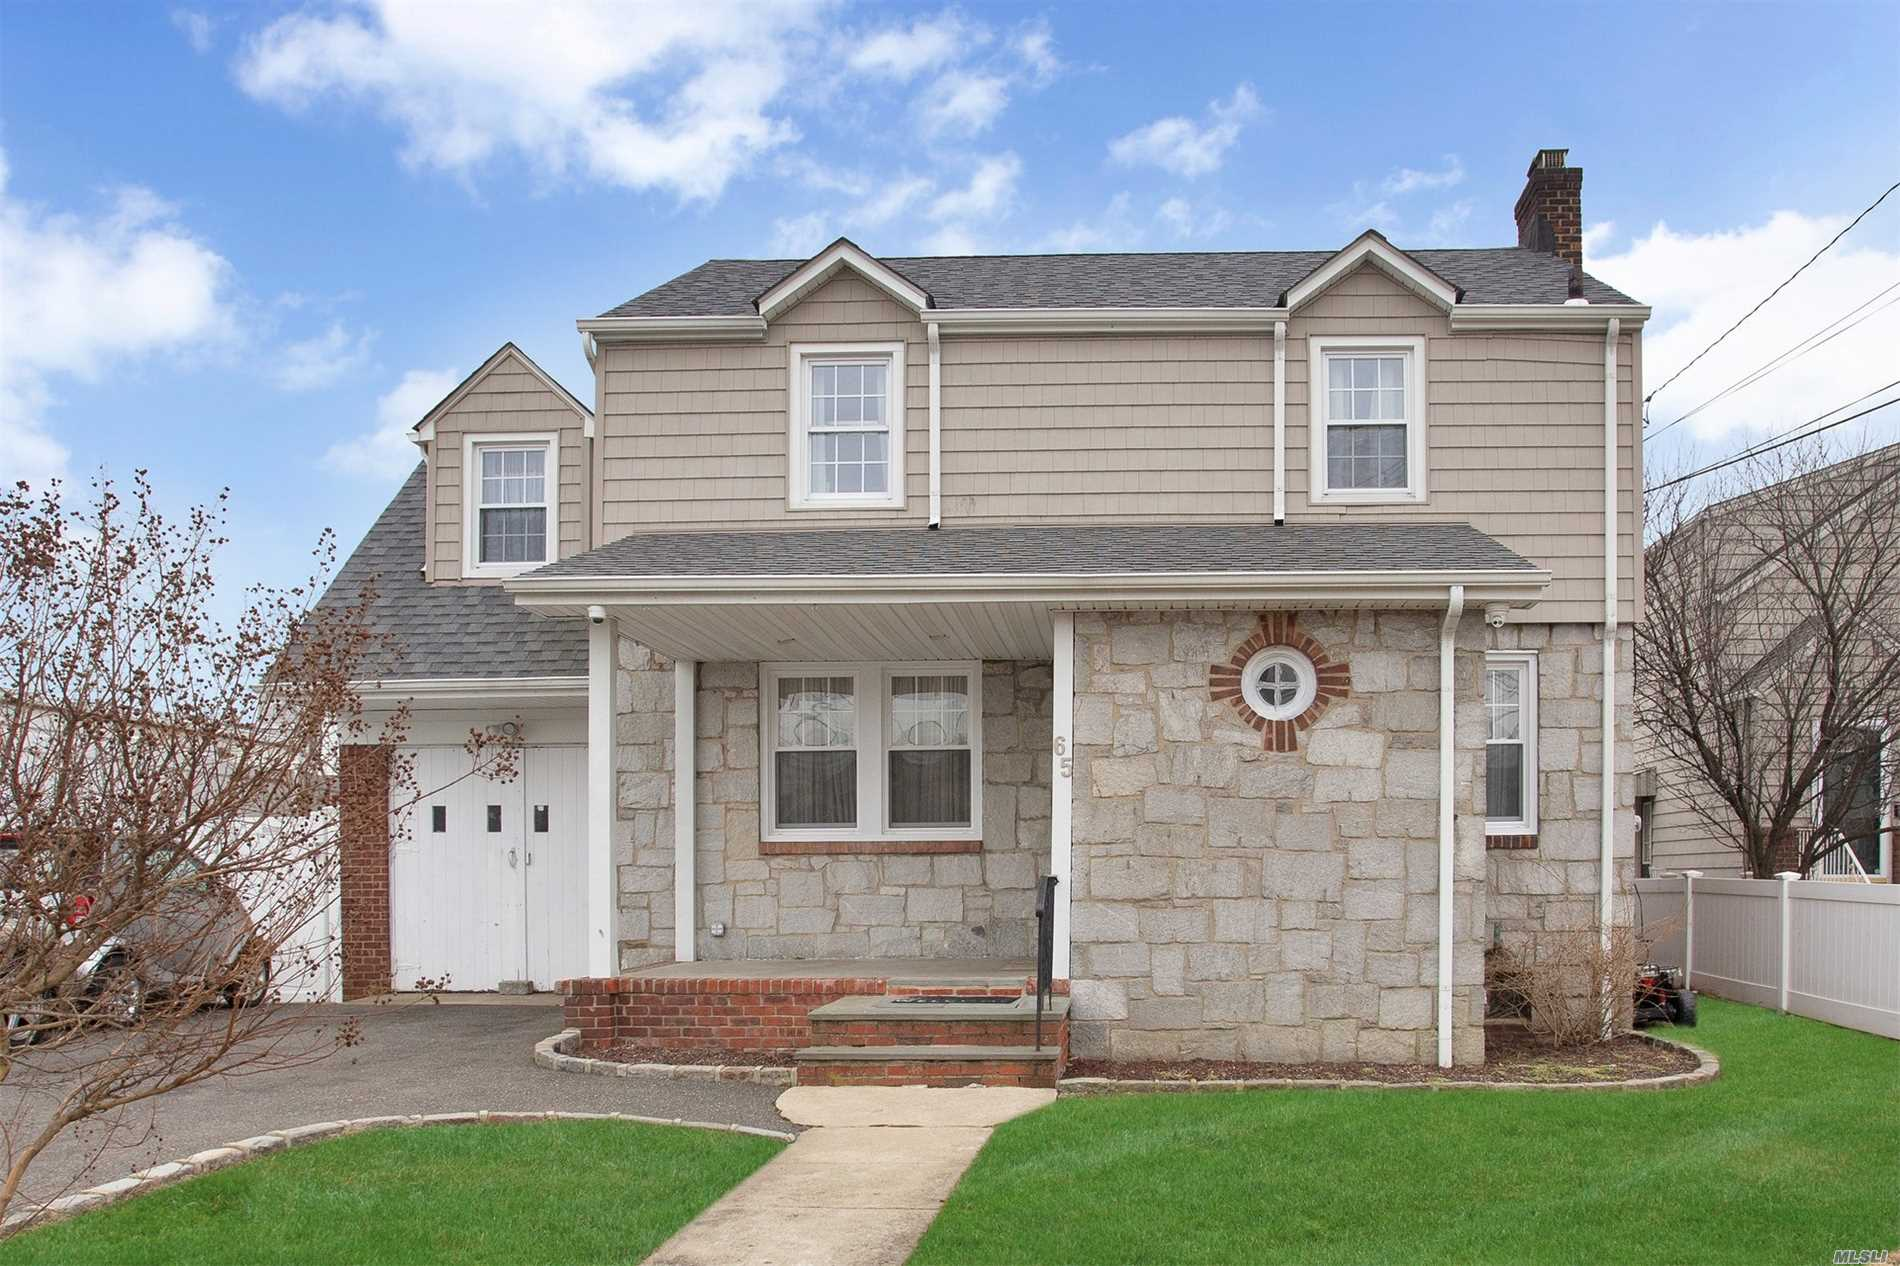 Photo of home for sale at 65 Phipps Ave, East Rockaway NY